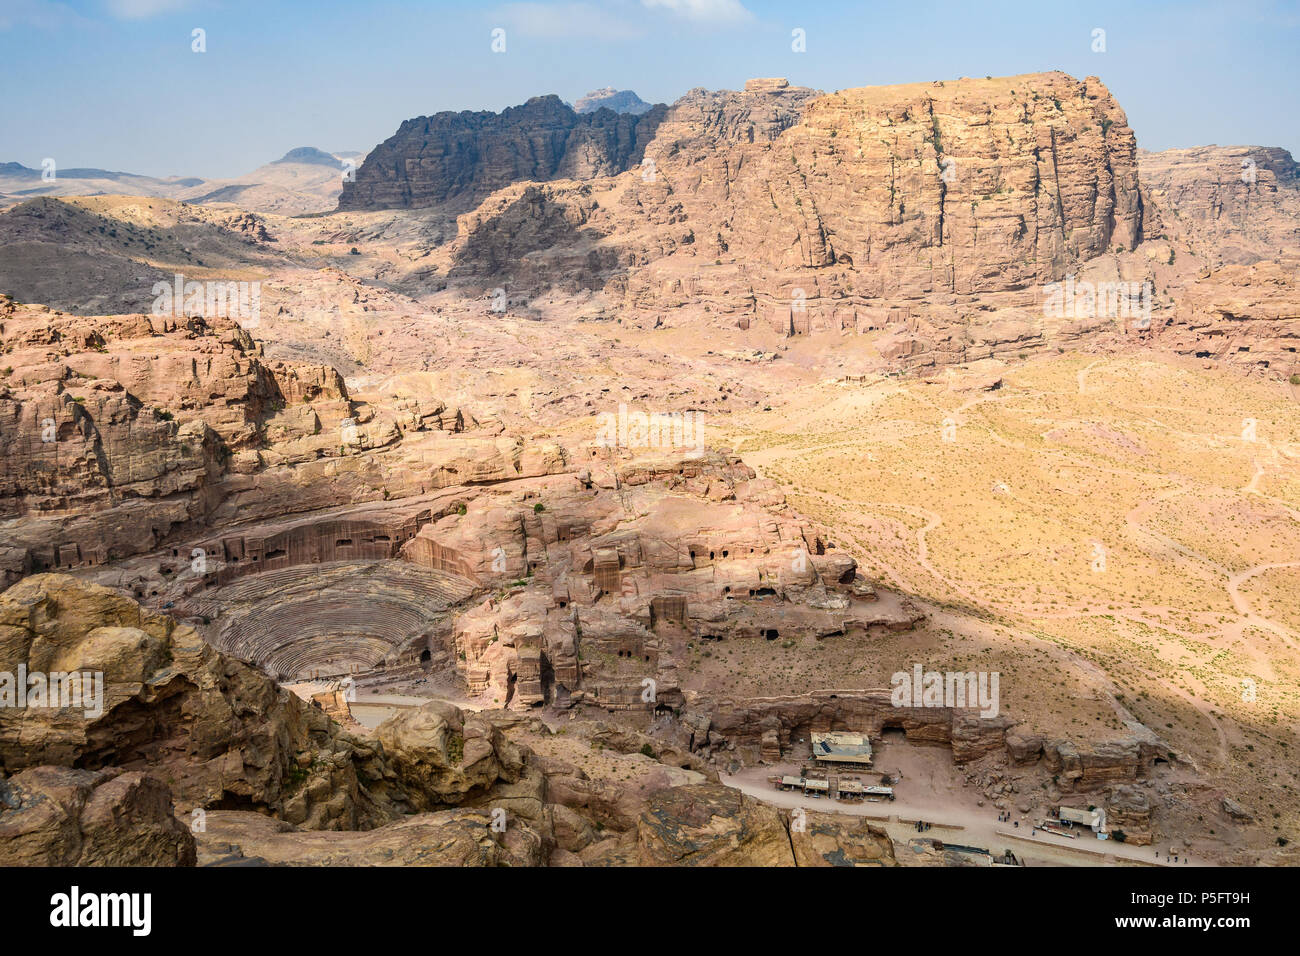 Panoramic view of the tombs and the Roman theater in the Lost City of Petra, Jordan - Stock Image